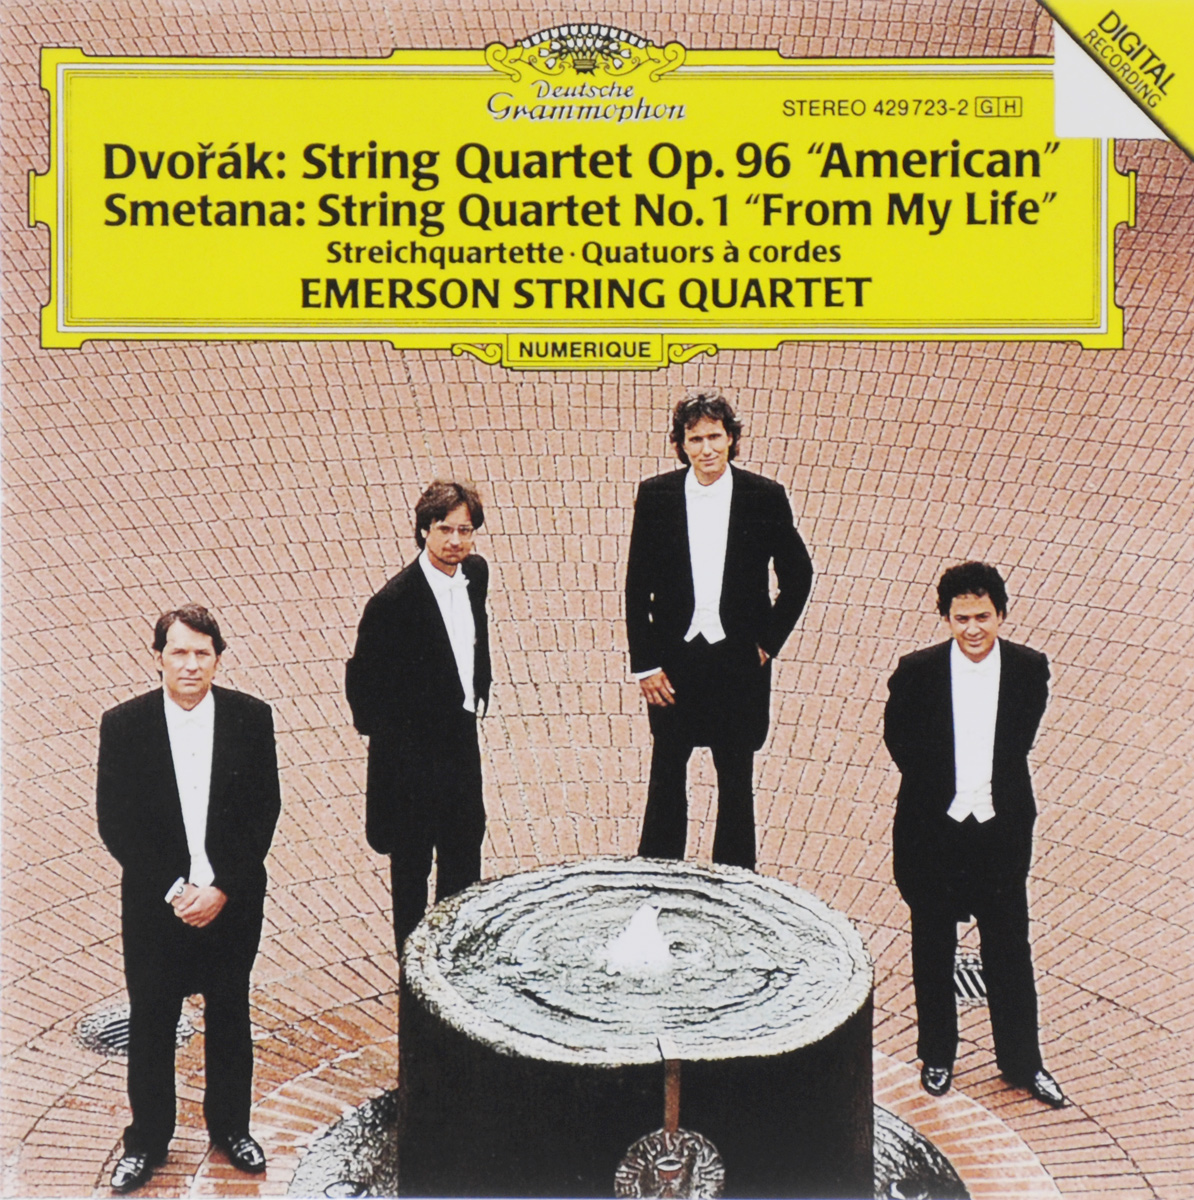 Emerson String Quartet Emerson String Quartet. String Quartet Op. 96 American / String Quartet No. 1 From My Life велосипед khs cx300 2016